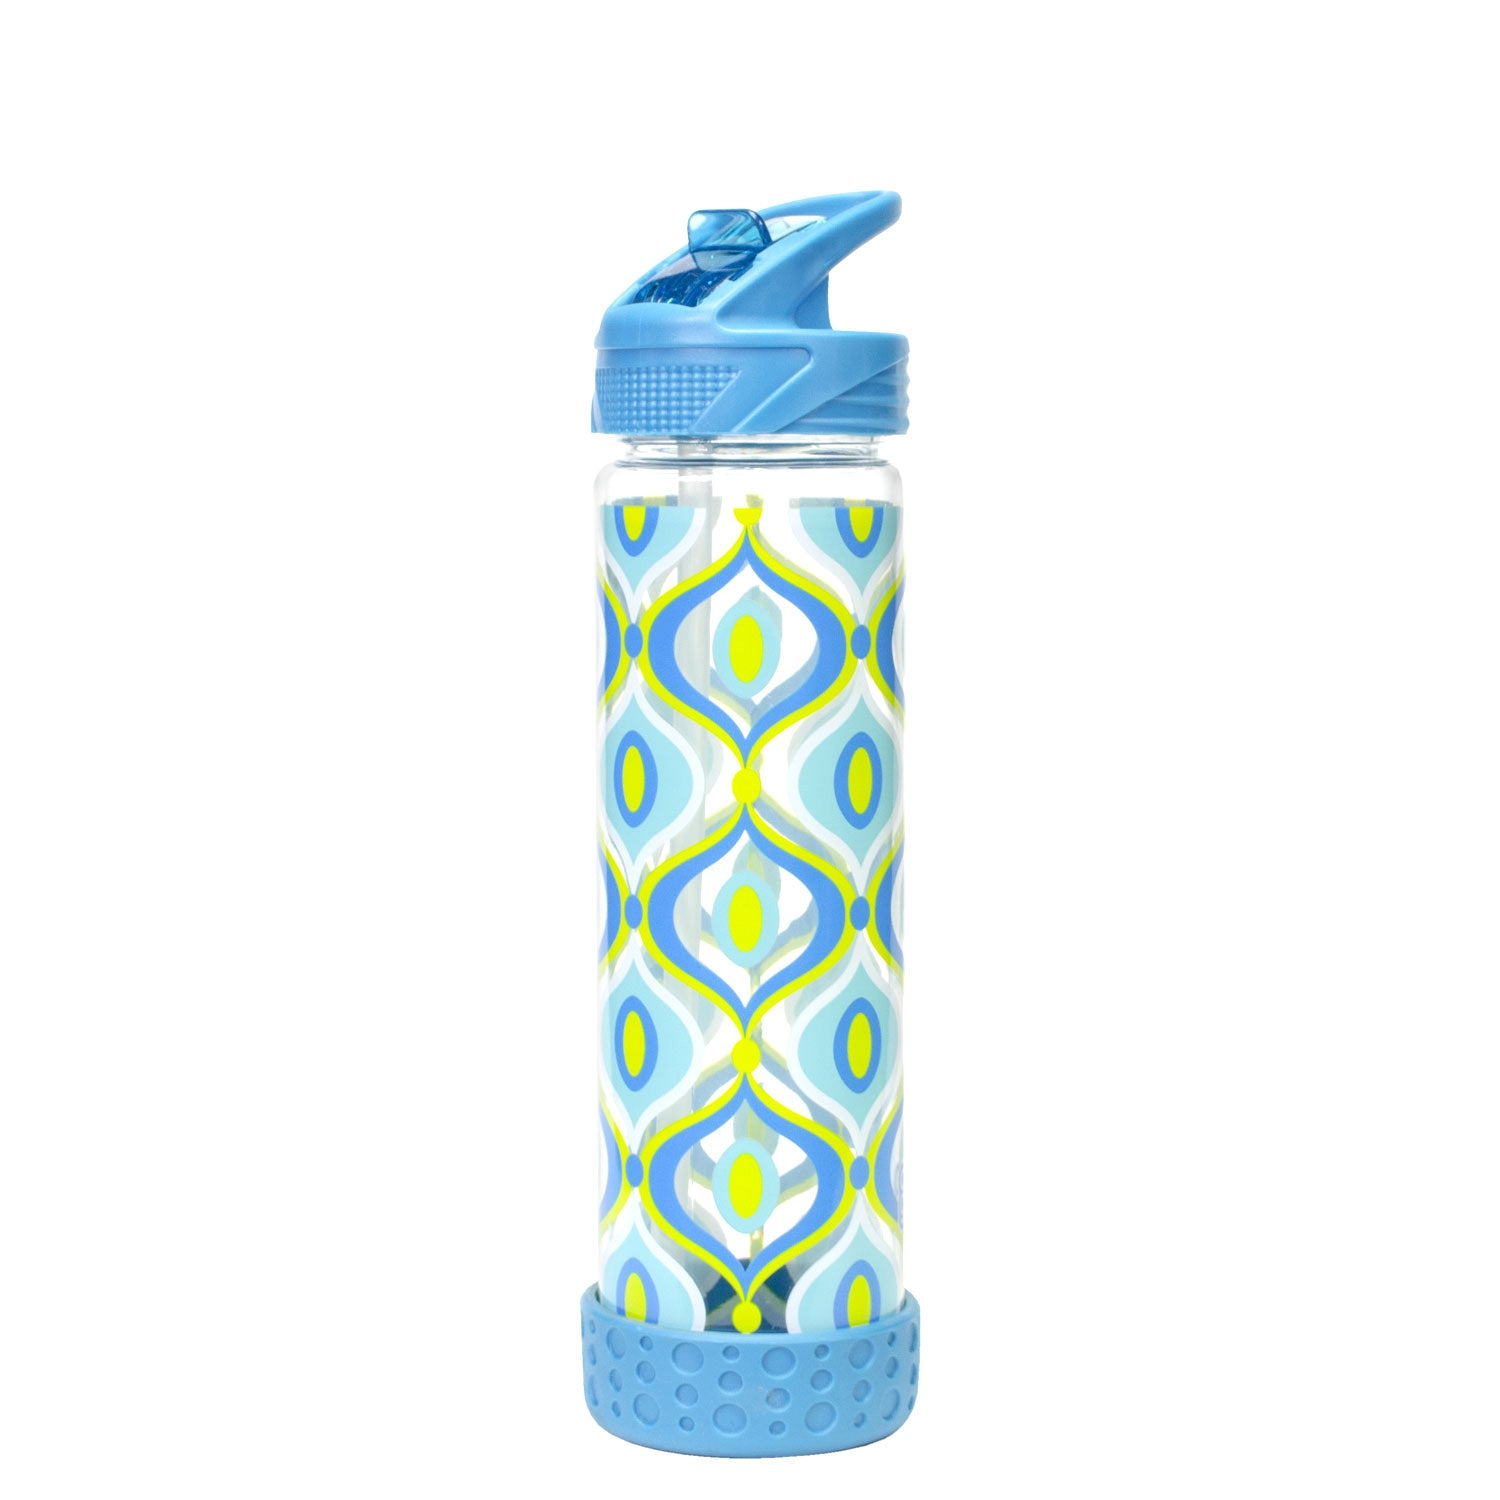 af67bb14f7 Blue / Mod Drops 22 Oz Printed Straight Wall Water Bottle at Cool Gear Water  Bottles